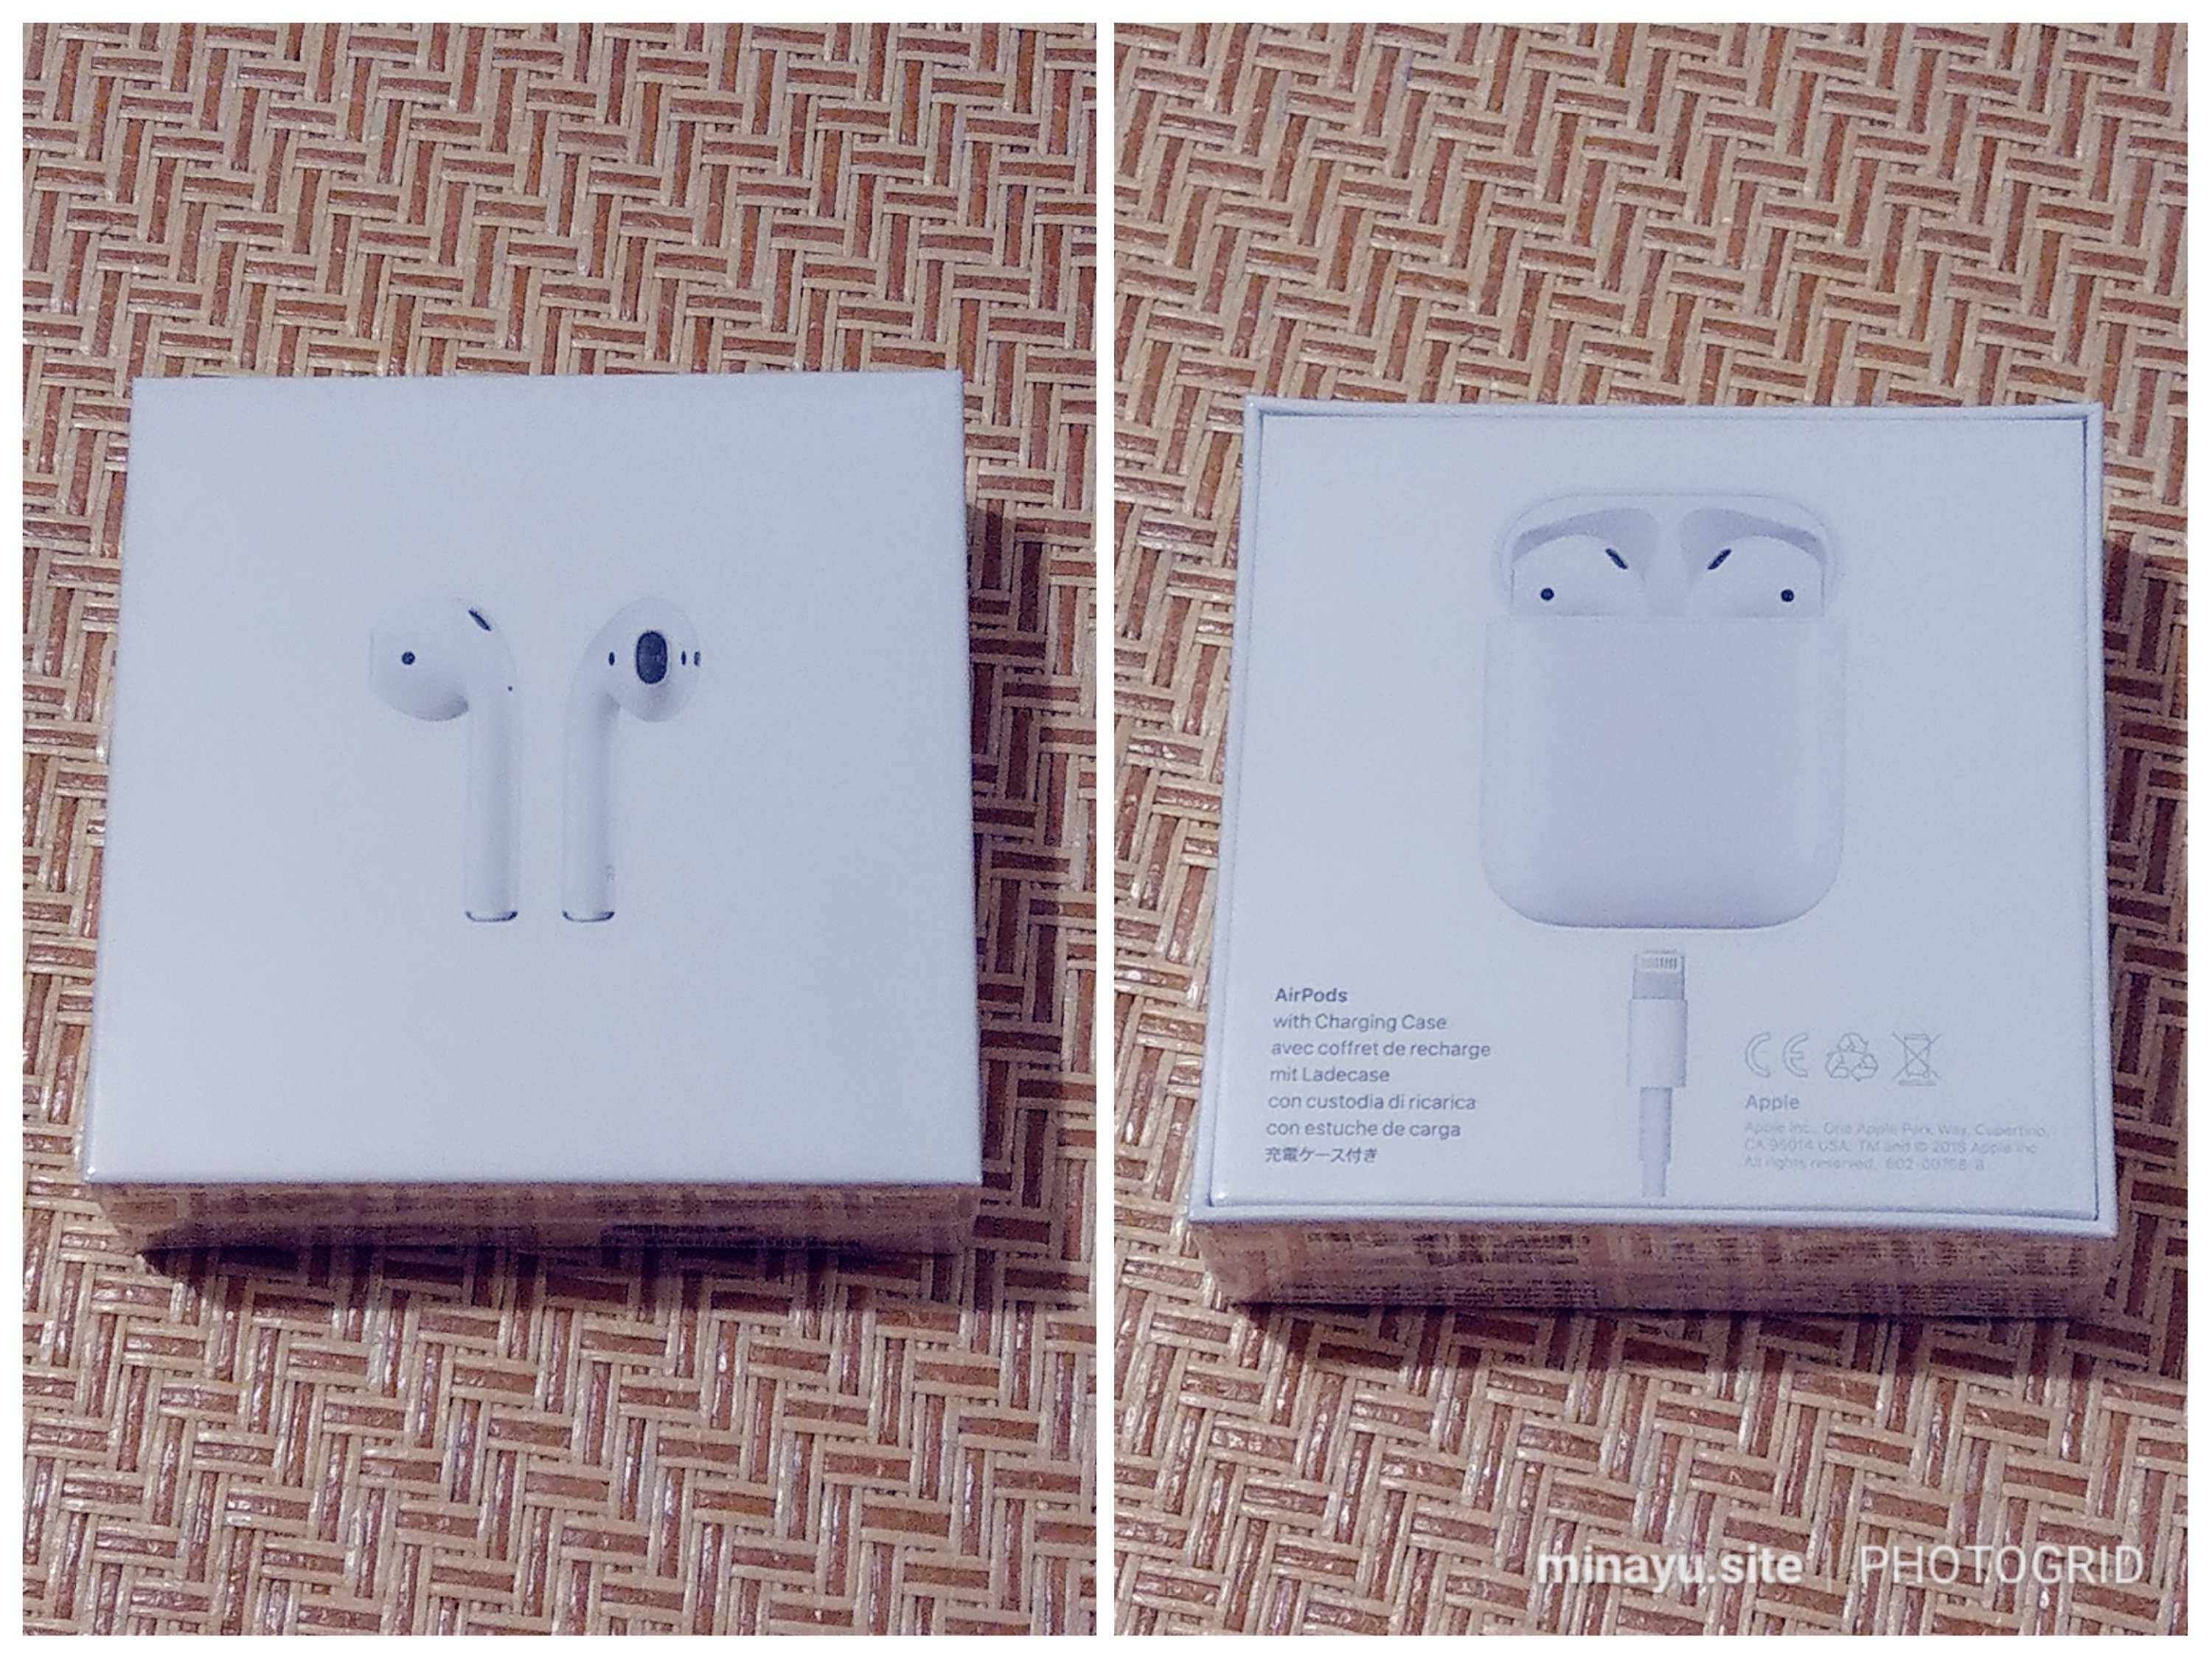 [Apple] Airpods 1 開箱/搭配 Android手機